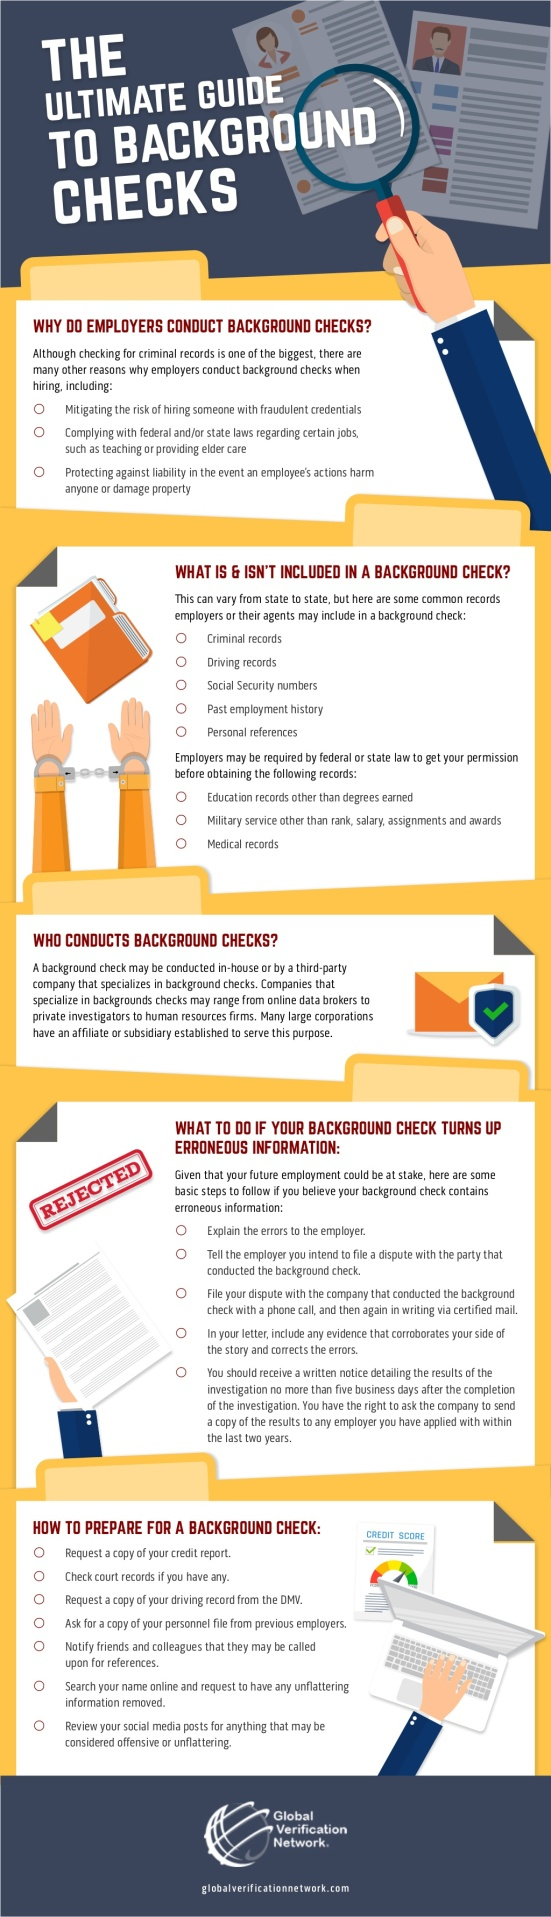 the-ultimate-guide-to-background-checks-1-1024